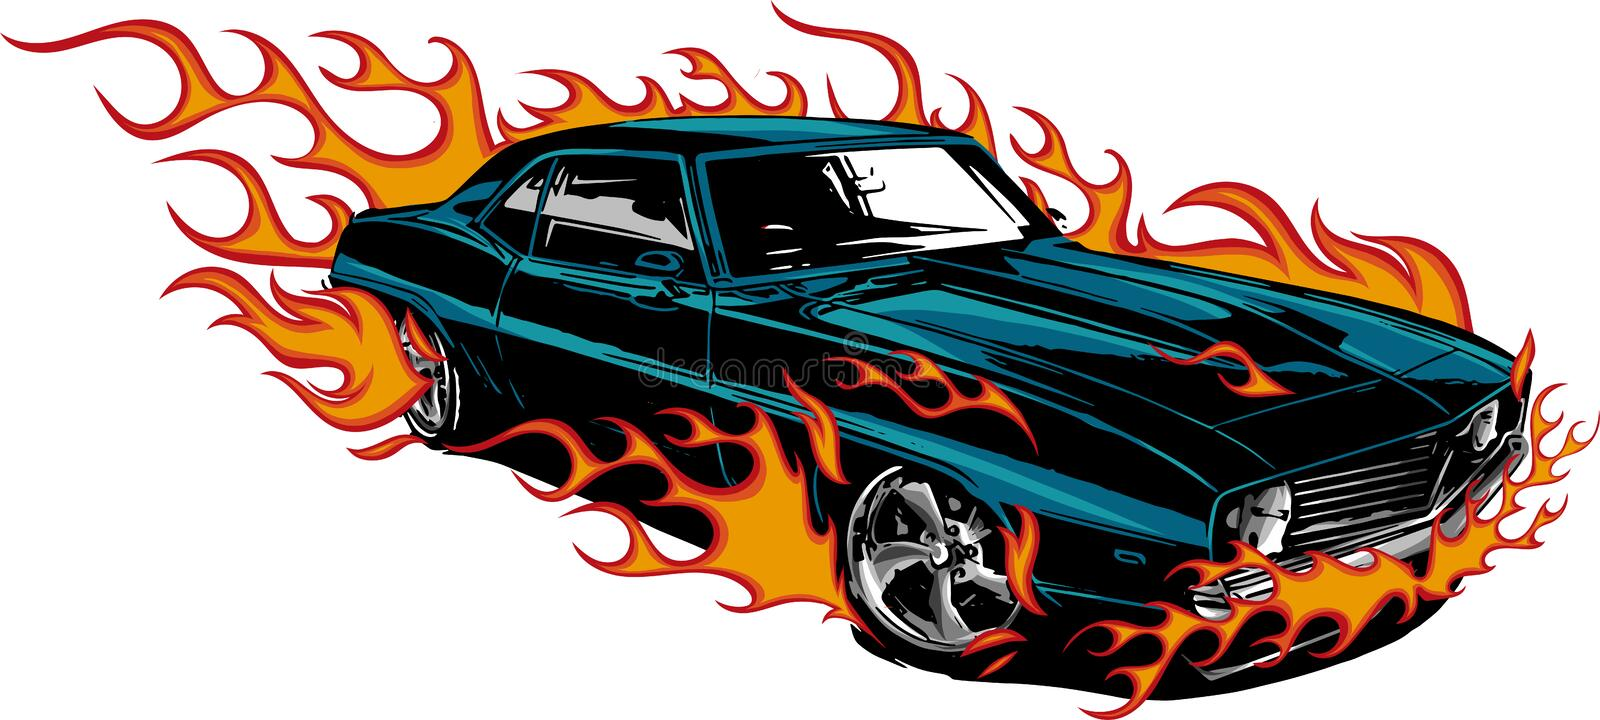 Car muscle old 70s vector illustration with flames vector illustration